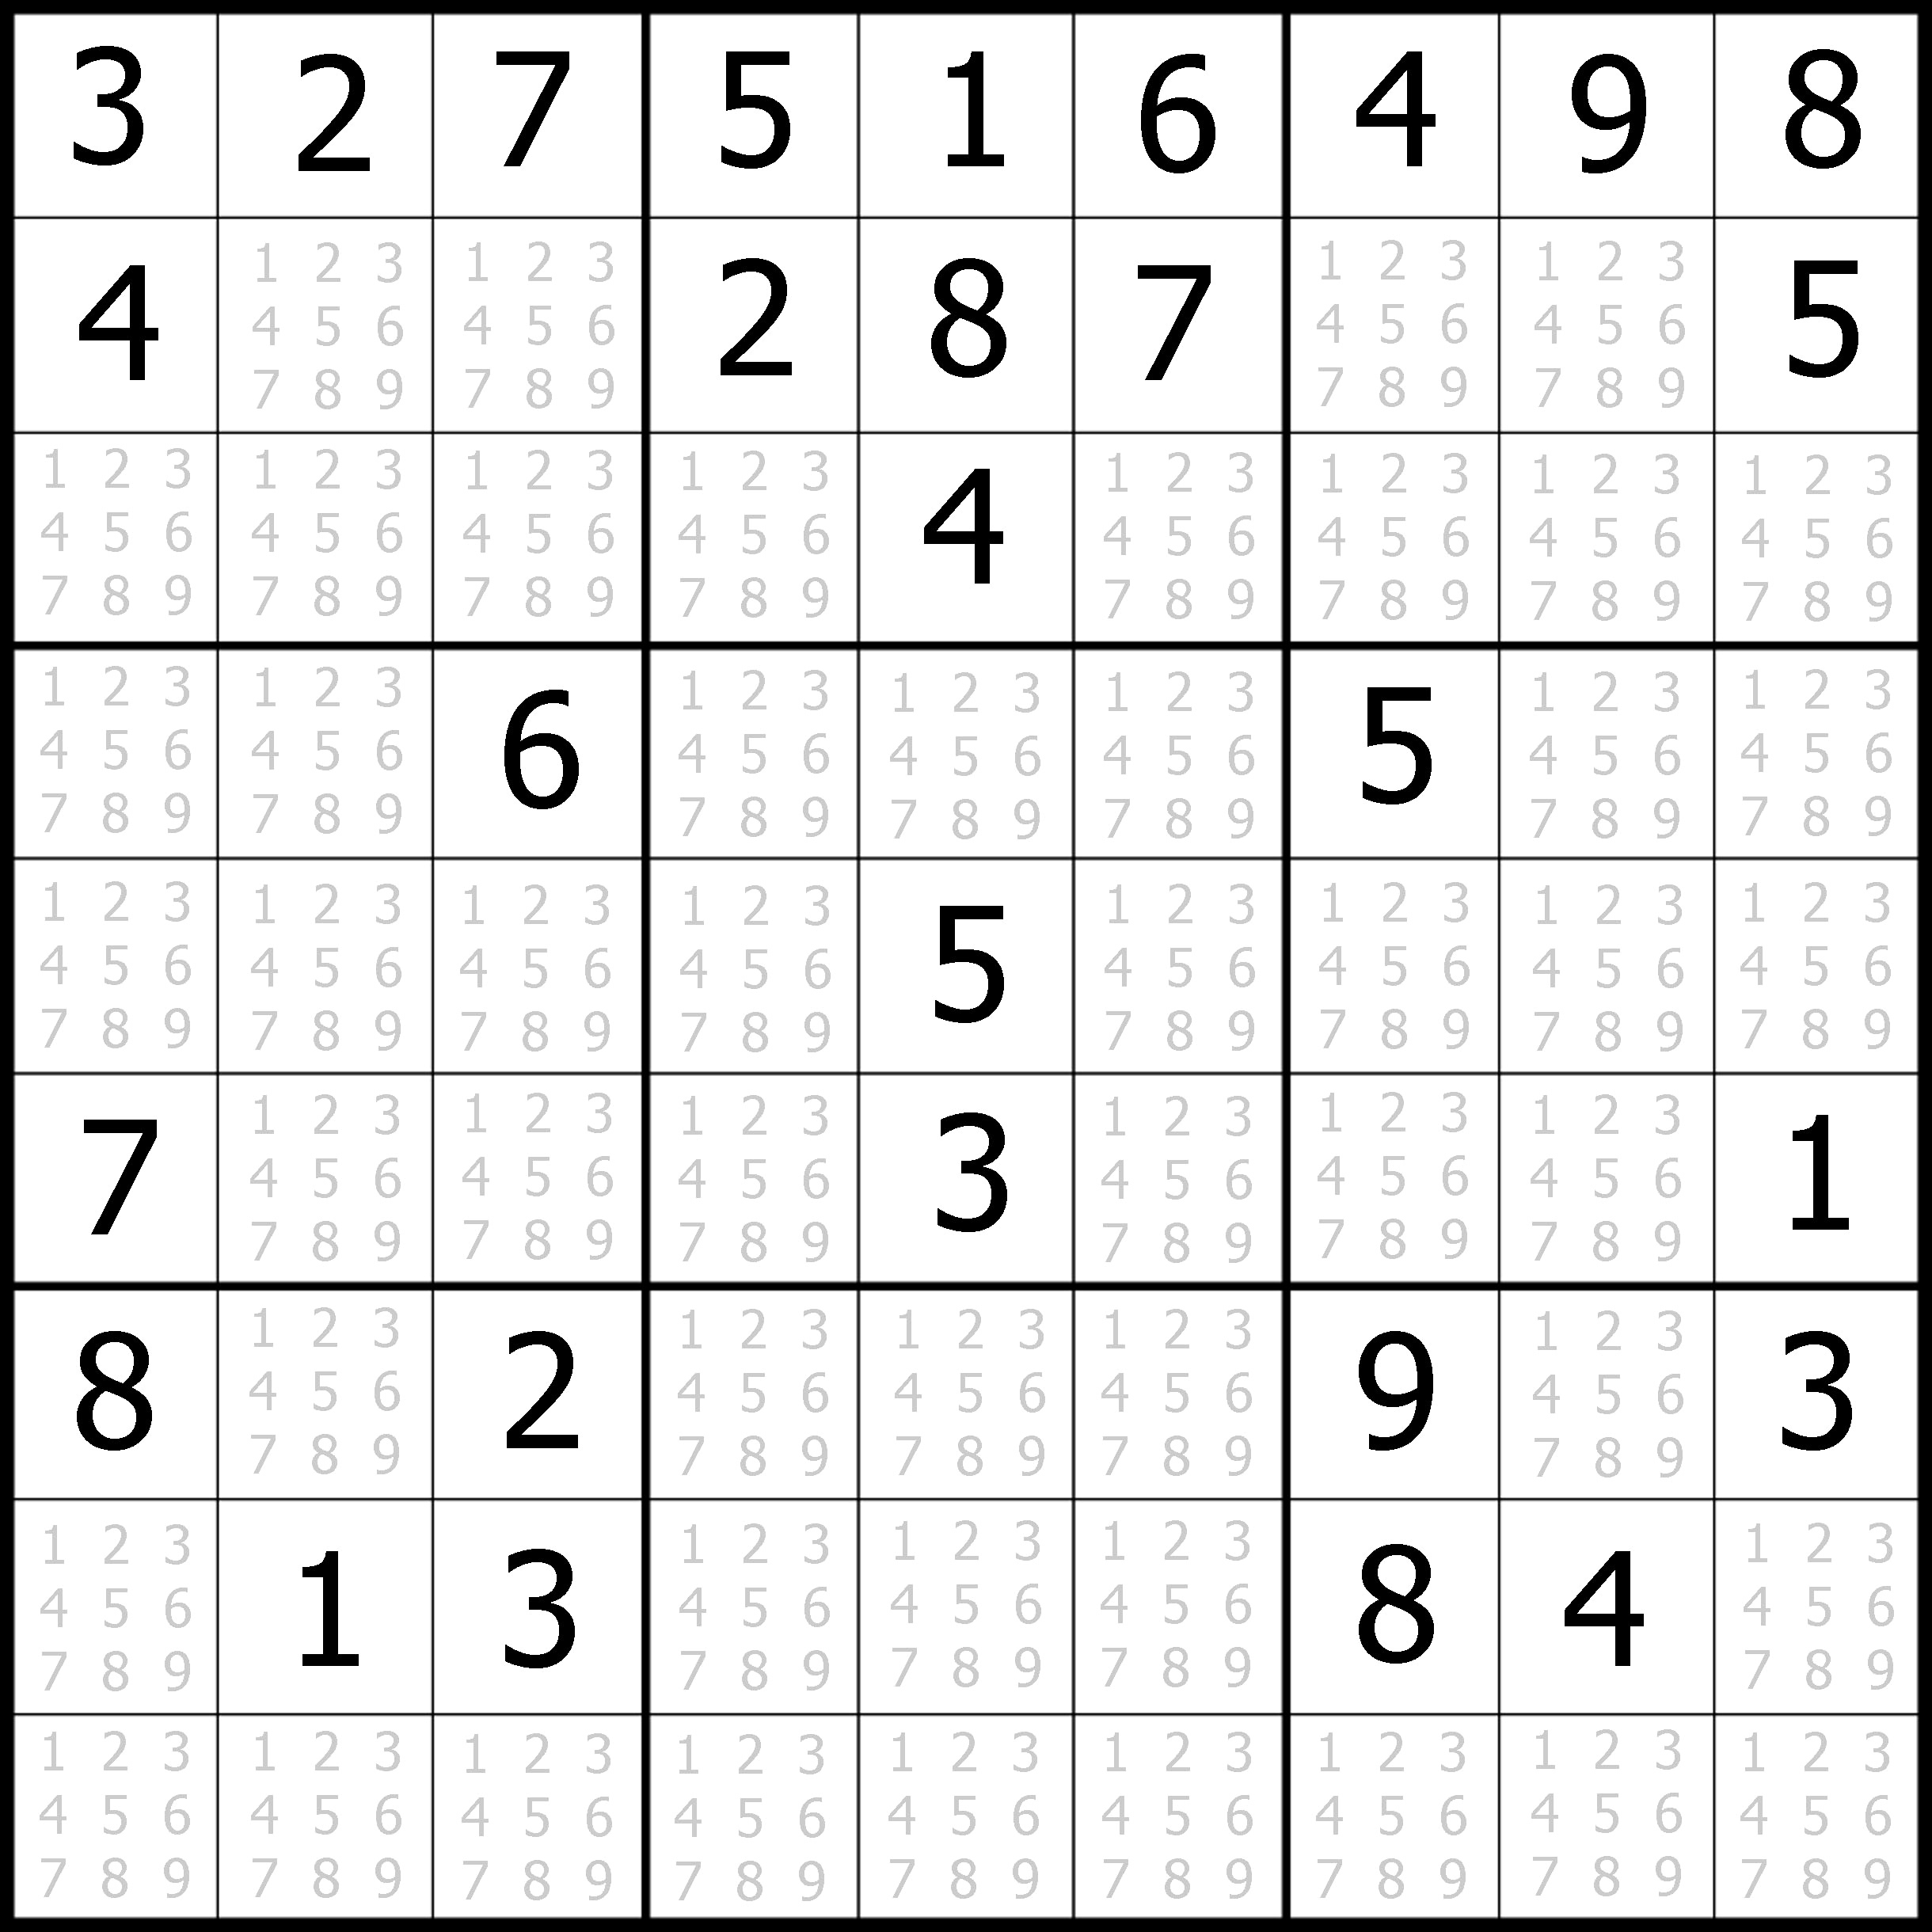 Free Printable Sudoku Puzzles For Kids Challenges For - Classy World - Free Printable Sudoku